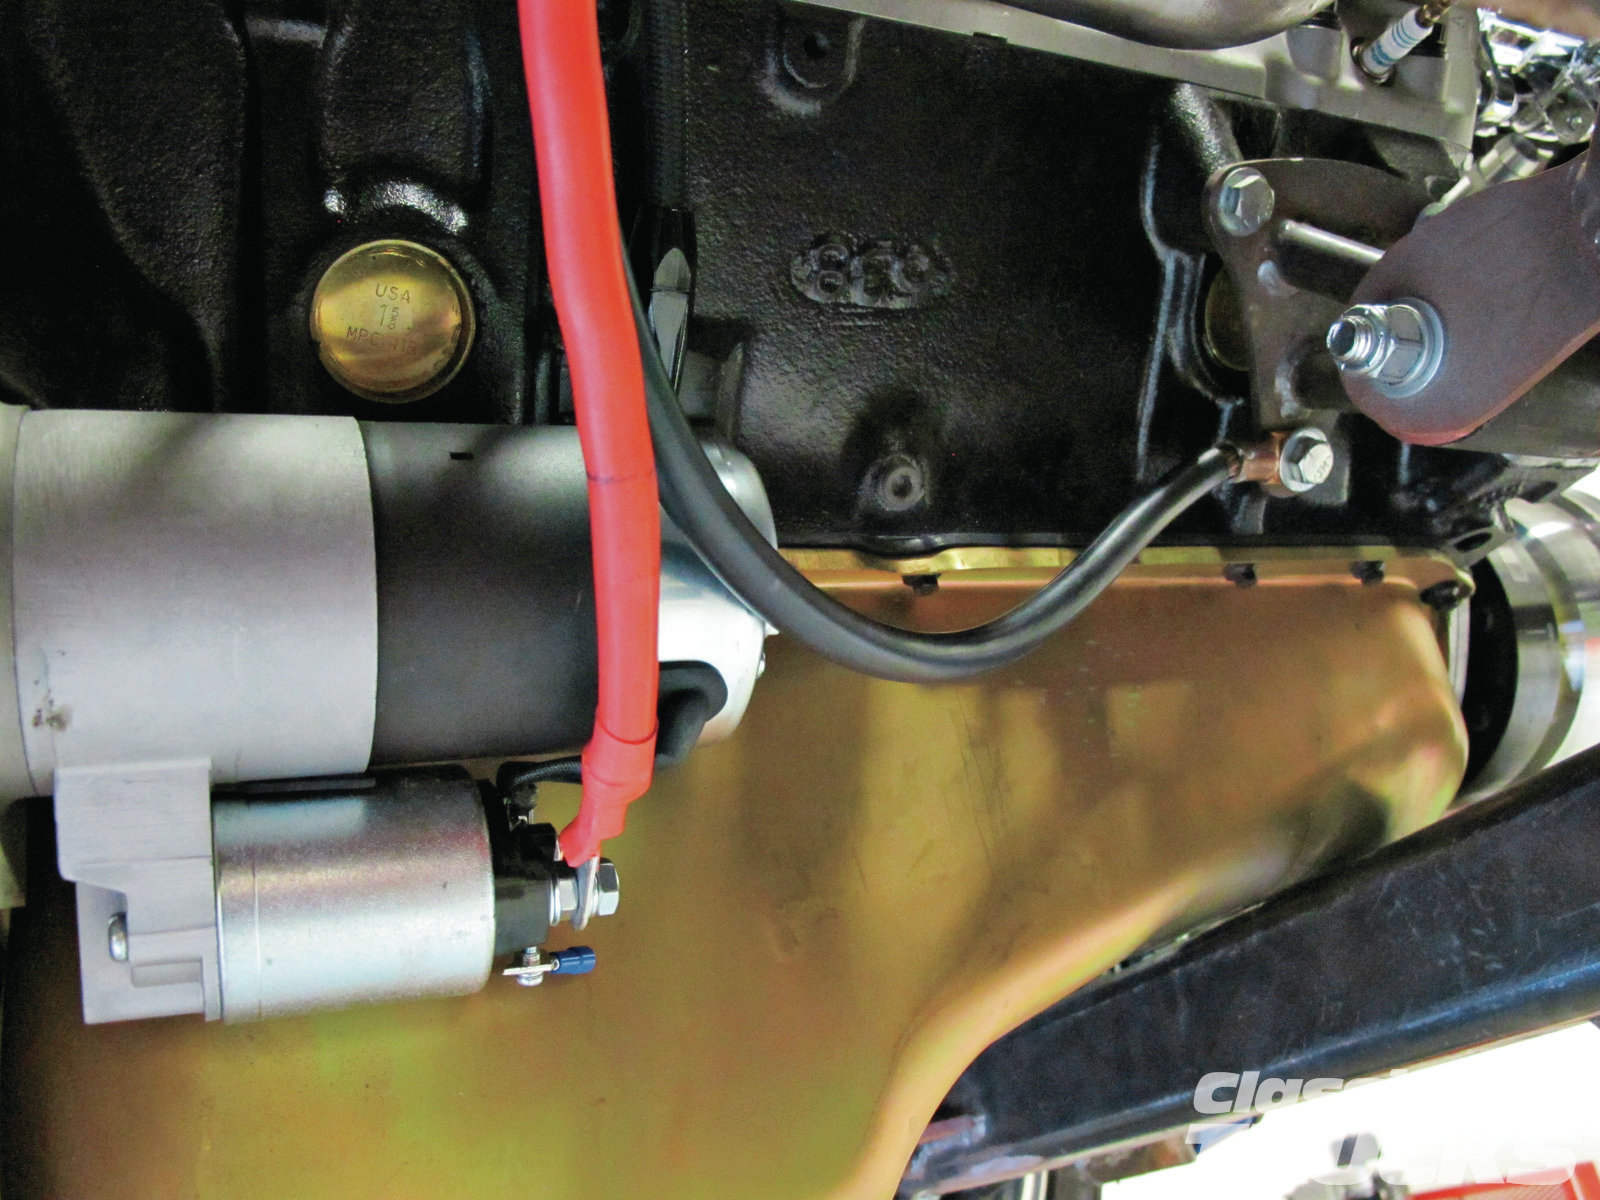 08. Grounds are more important! Did I get your attention? Most problems with gauges come from poor grounds. A good ground starts with the battery and the ground wire location. Make sure the ground wire is clean and goes to the engine block with a heavy-gauge wire directly from the battery. Then branch out from the engine block to the frame and to the body.